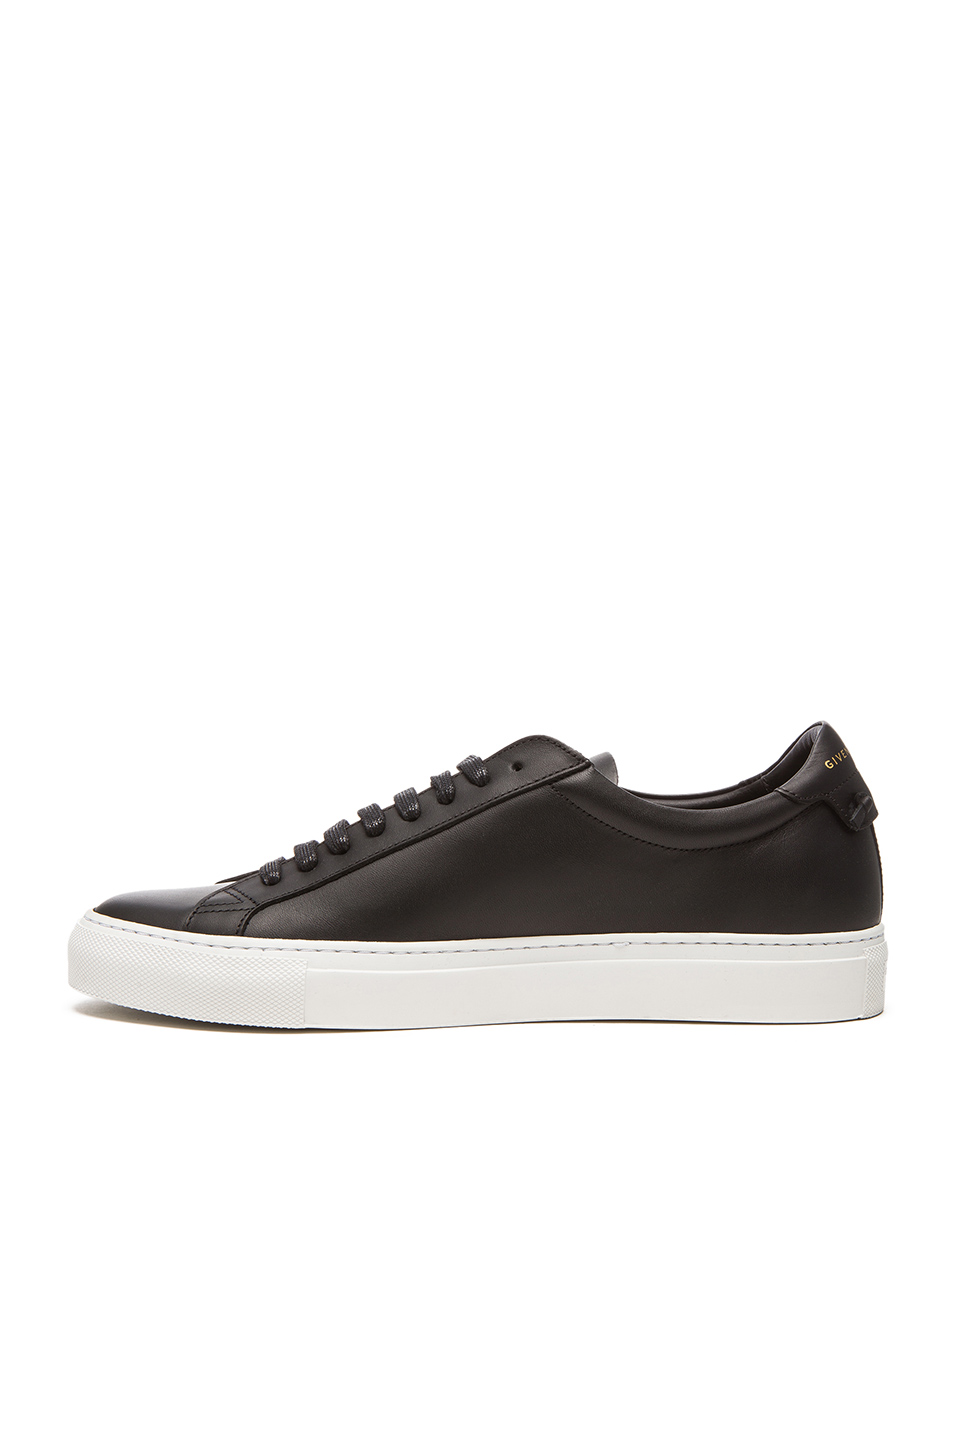 Givenchy Knots Low Top Leather Sneakers